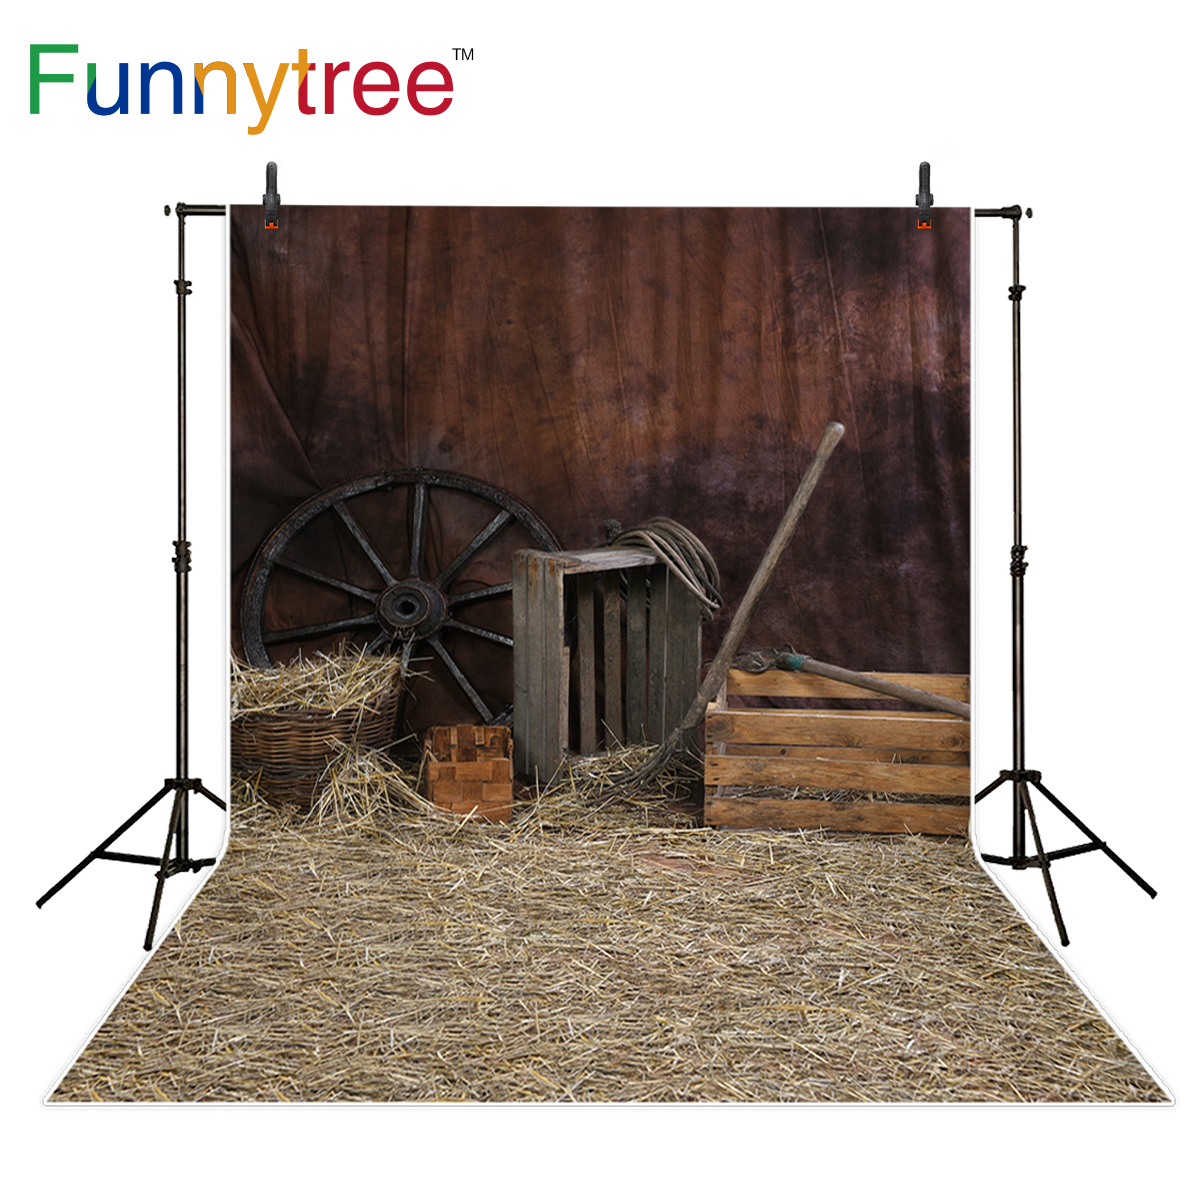 Funnytree photography backdrop western country wood house barn straw background photo studio photobooth photo prop